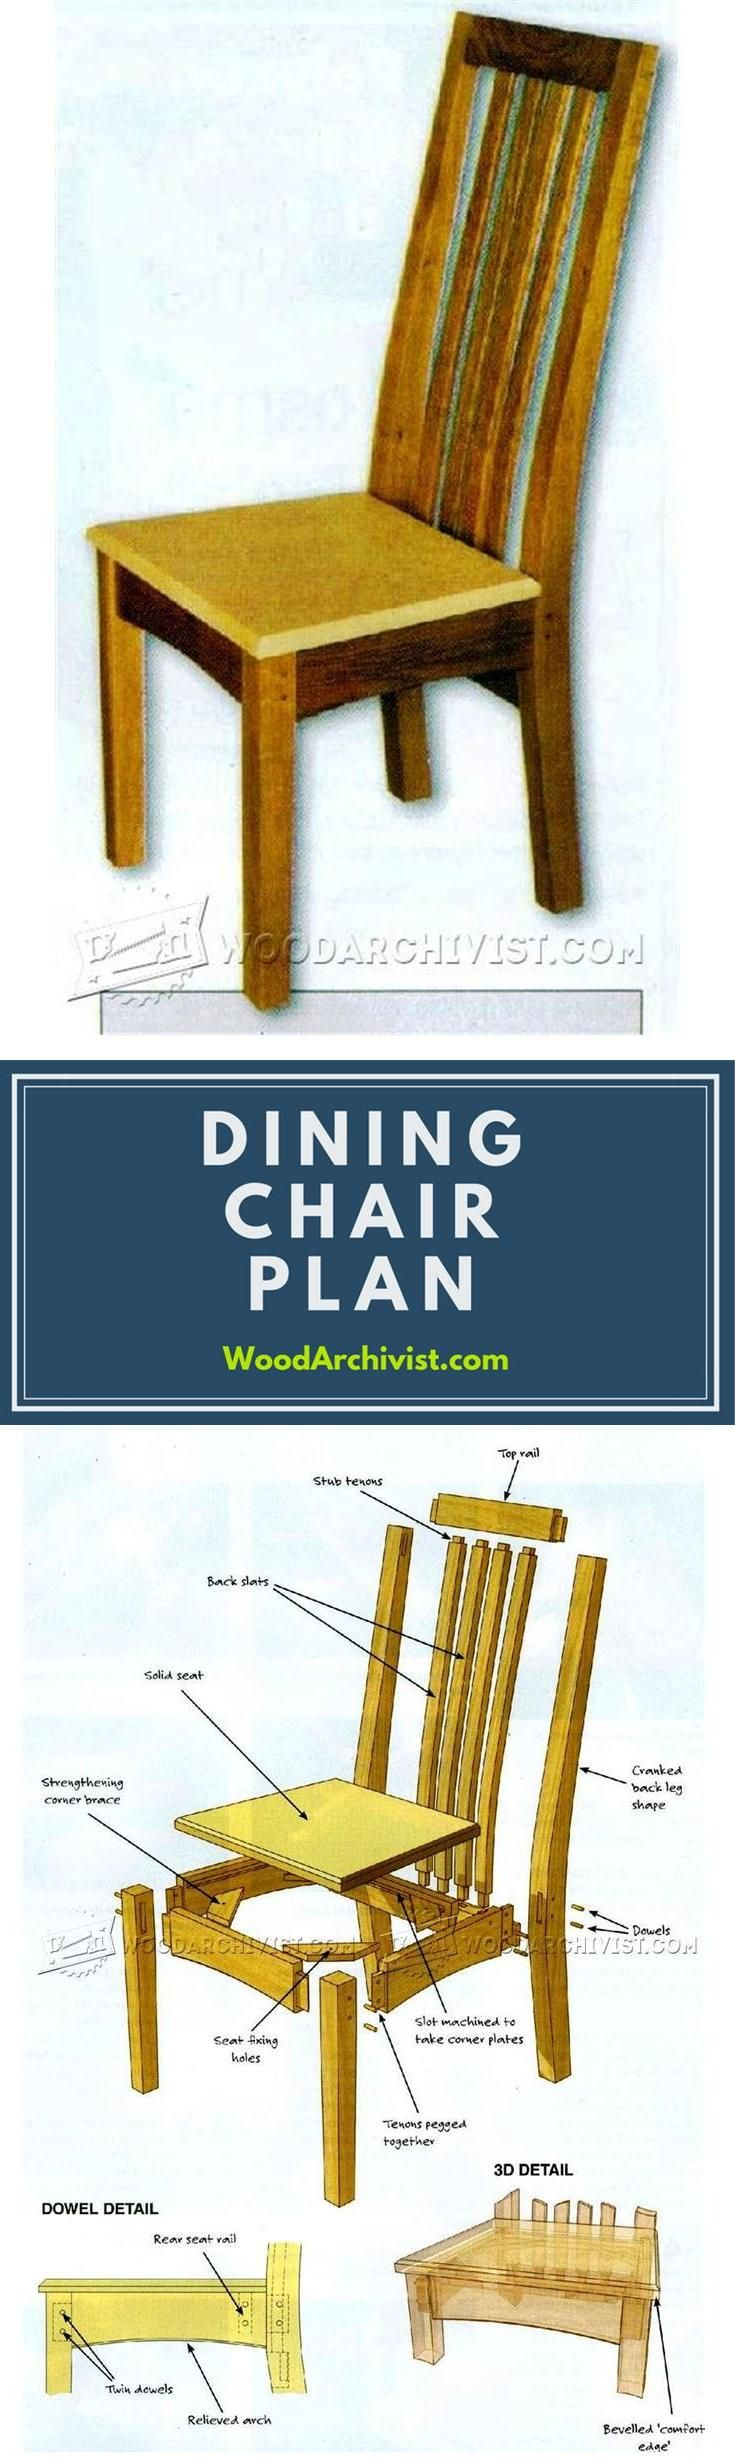 Oak Dining Chairs  Plans - Furniture Plans and Projects | WoodArchivist.com